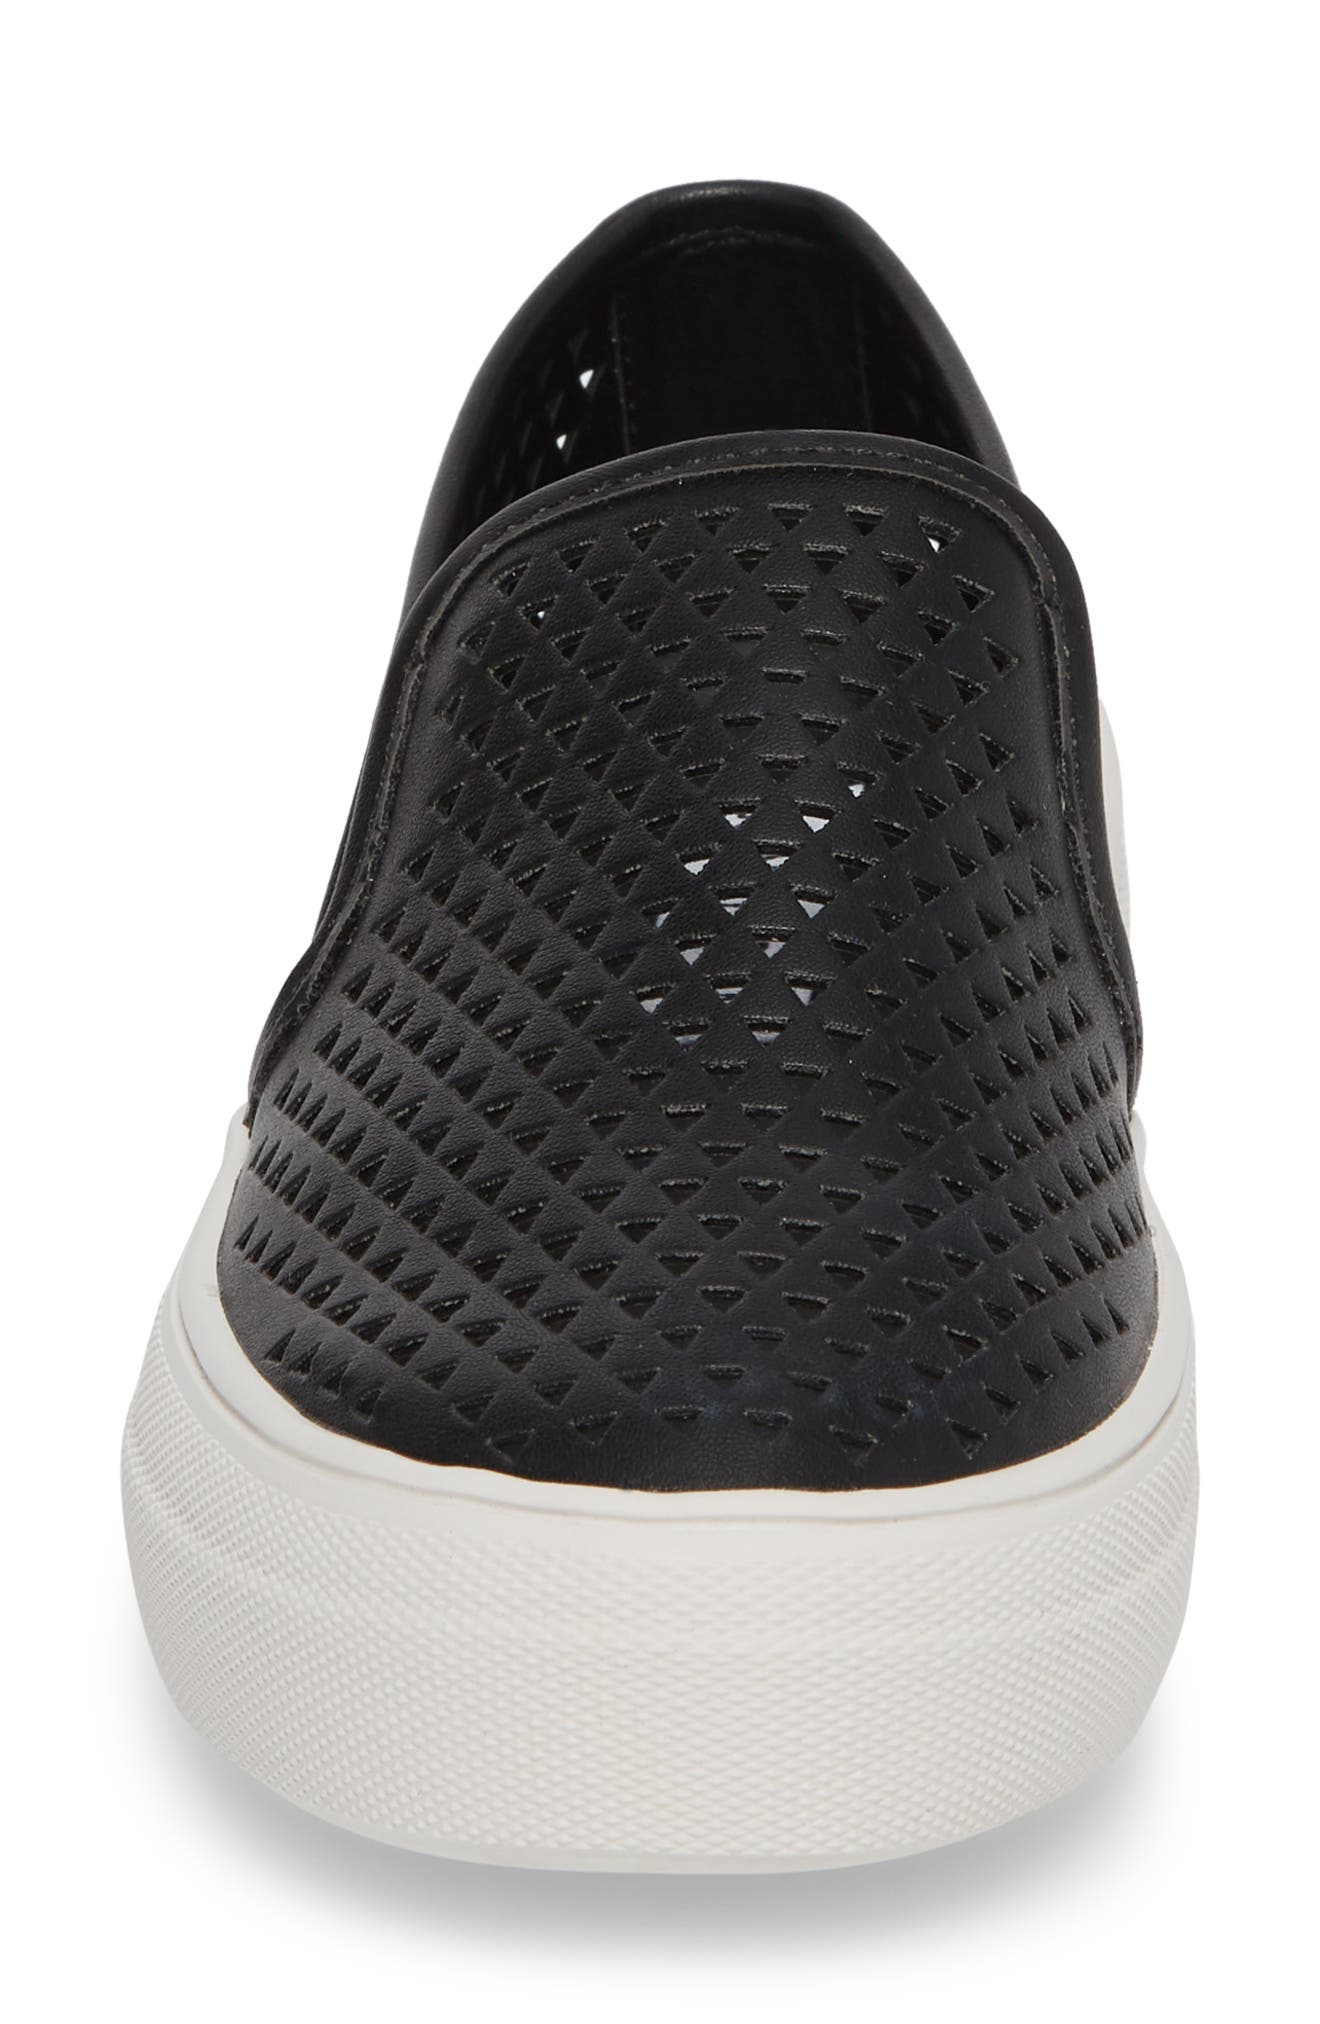 Gal-P Perforated Slip-On Sneaker,                             Alternate thumbnail 4, color,                             001